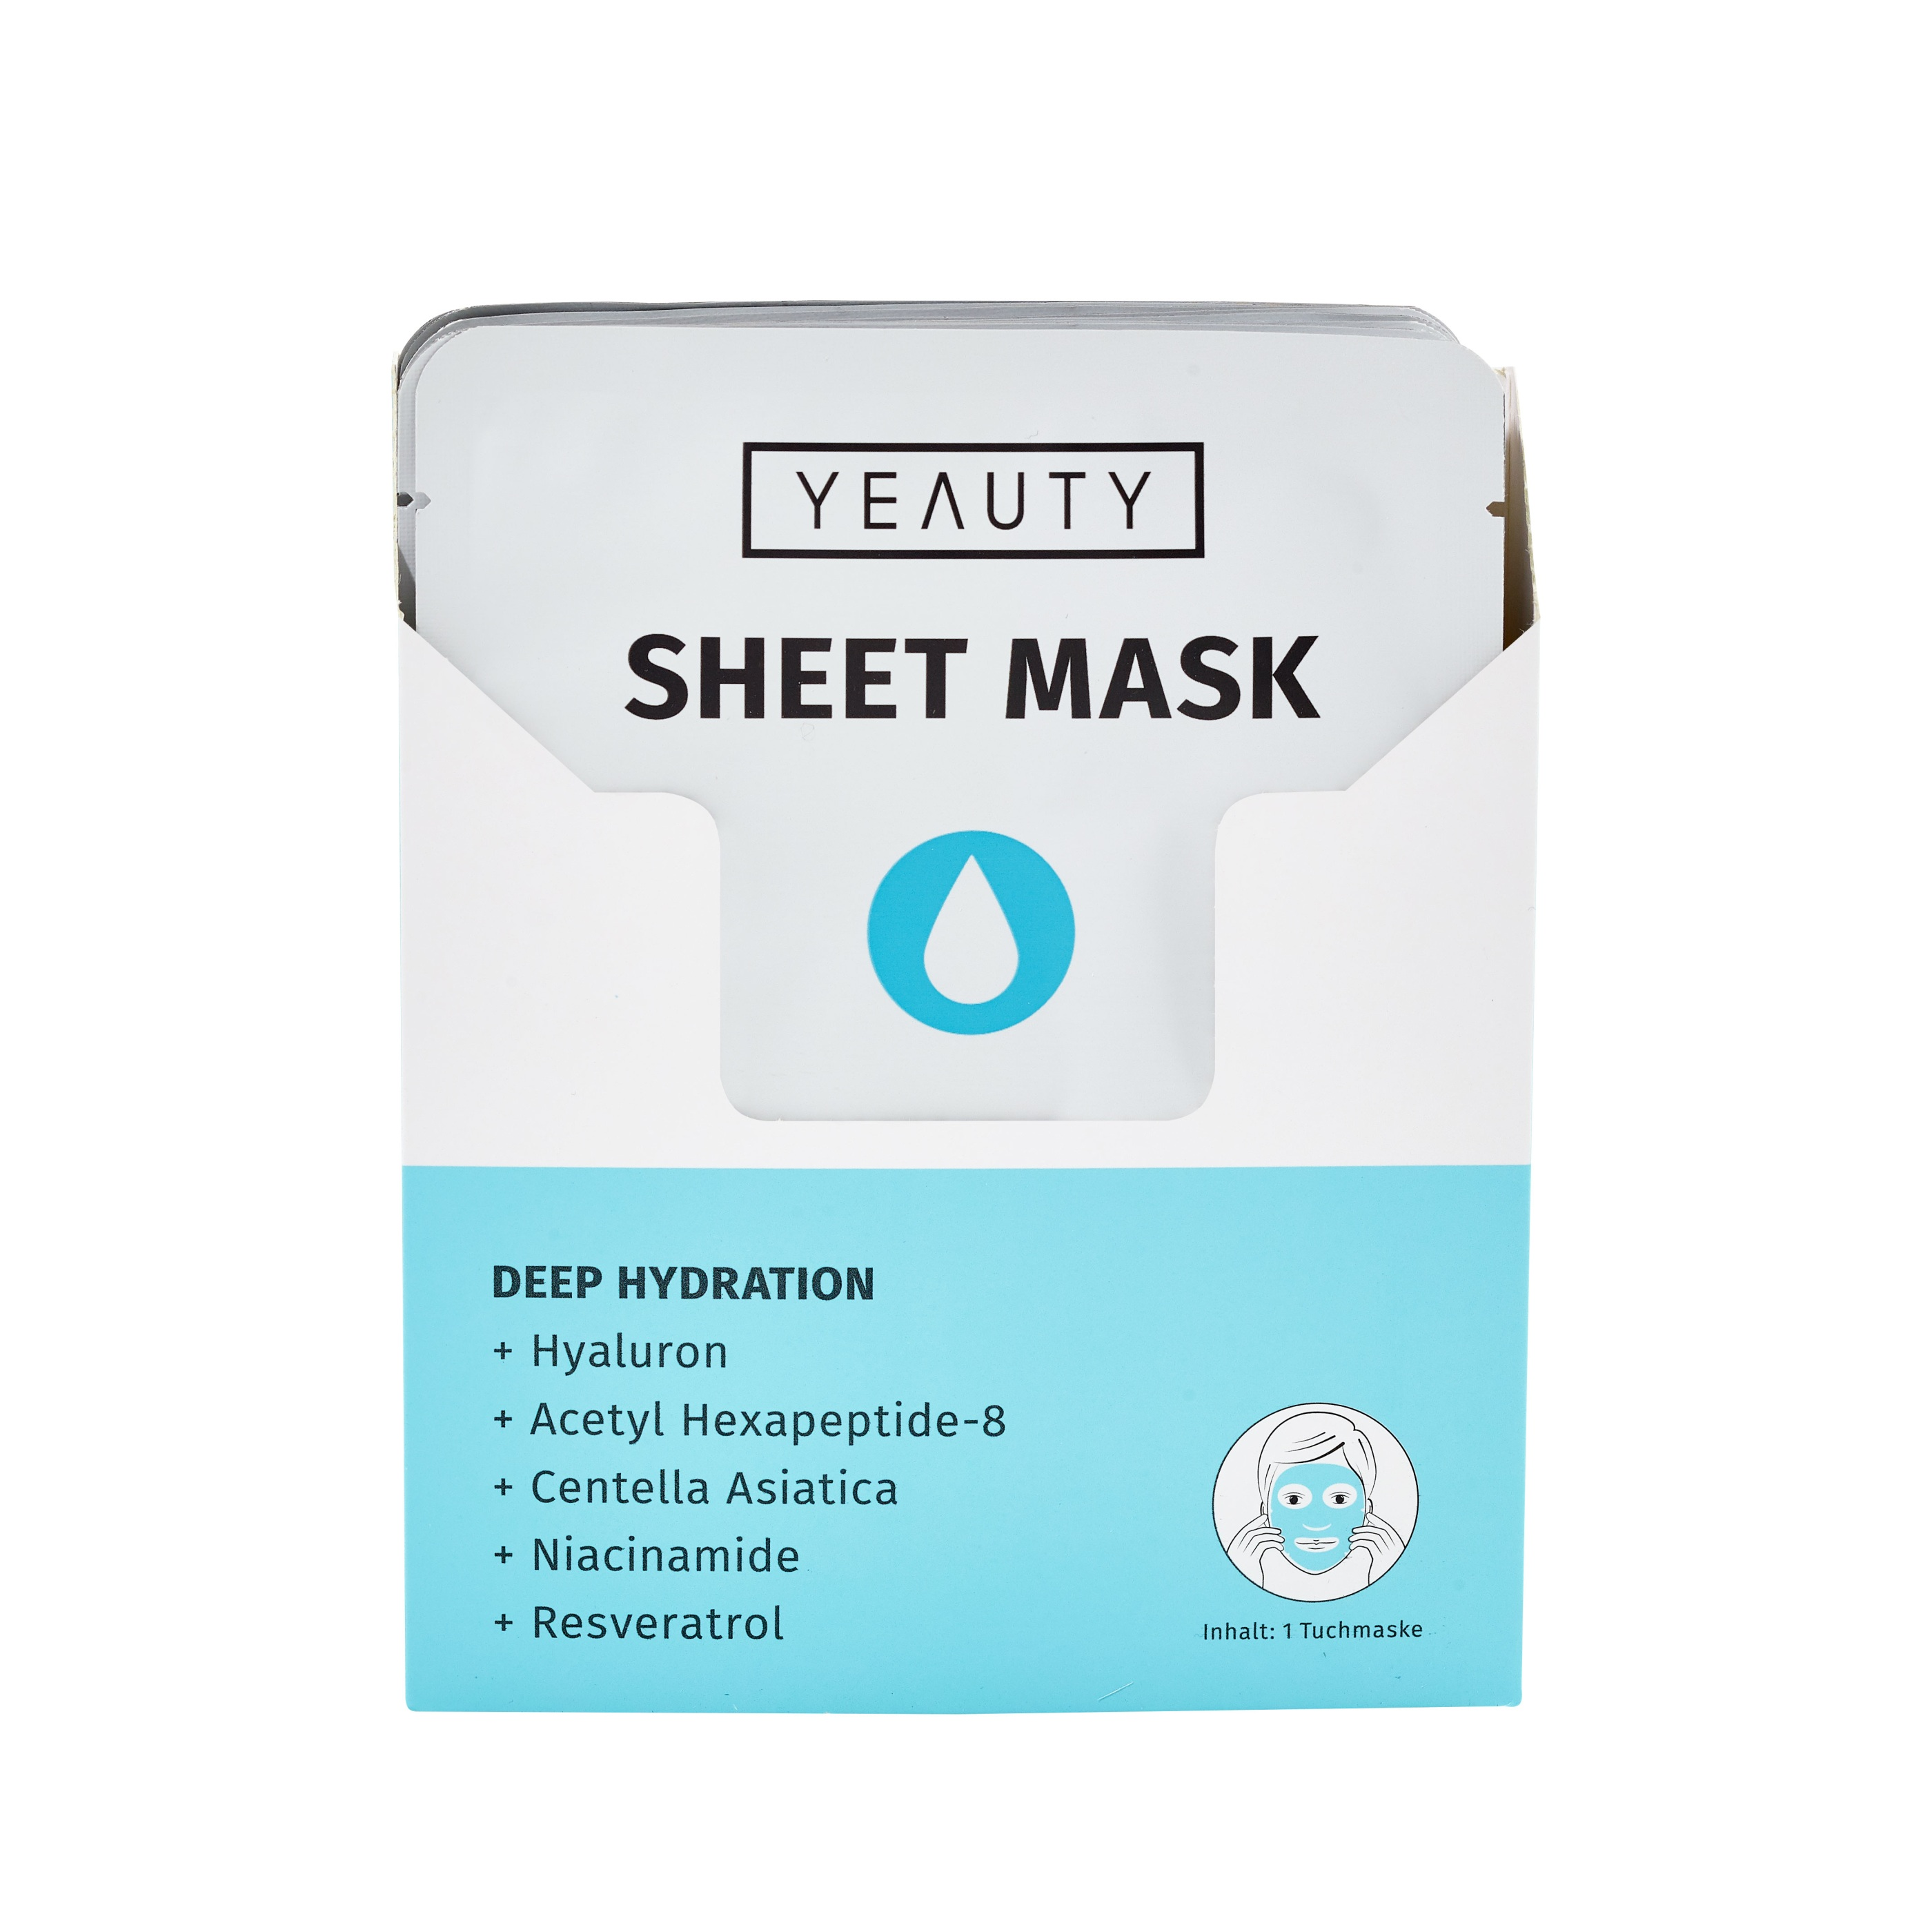 YEAUTY_Verpackungseinheit_DEEP-HYDRATION-SHEET-MASK_Frontansicht_300dpi_rgb_isolated (1)